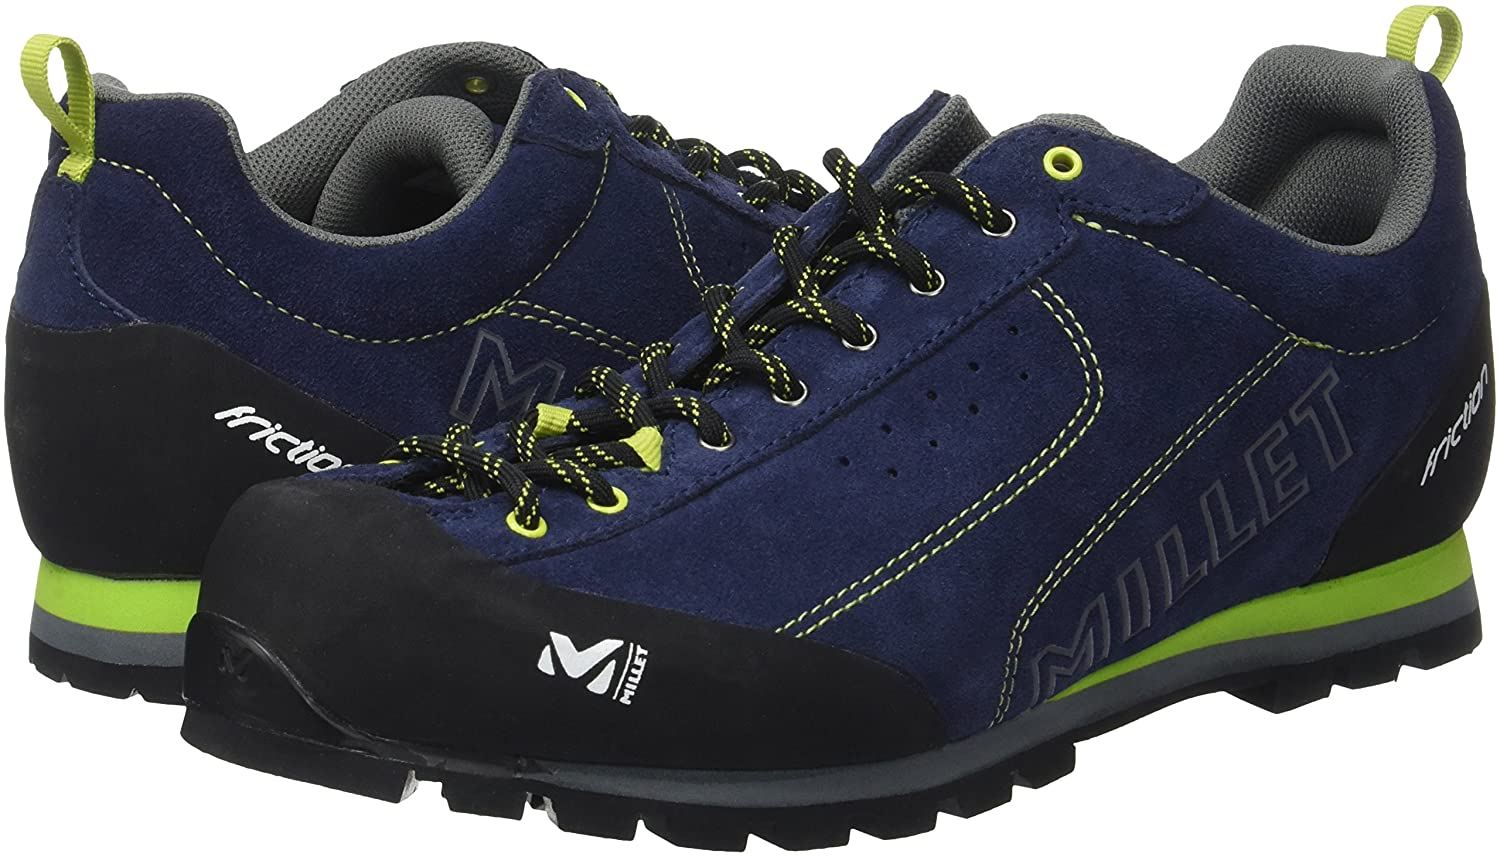 MILLET Friction Chaussures d'Approche Mixte Adulte, Poseidon, Taille 6.5